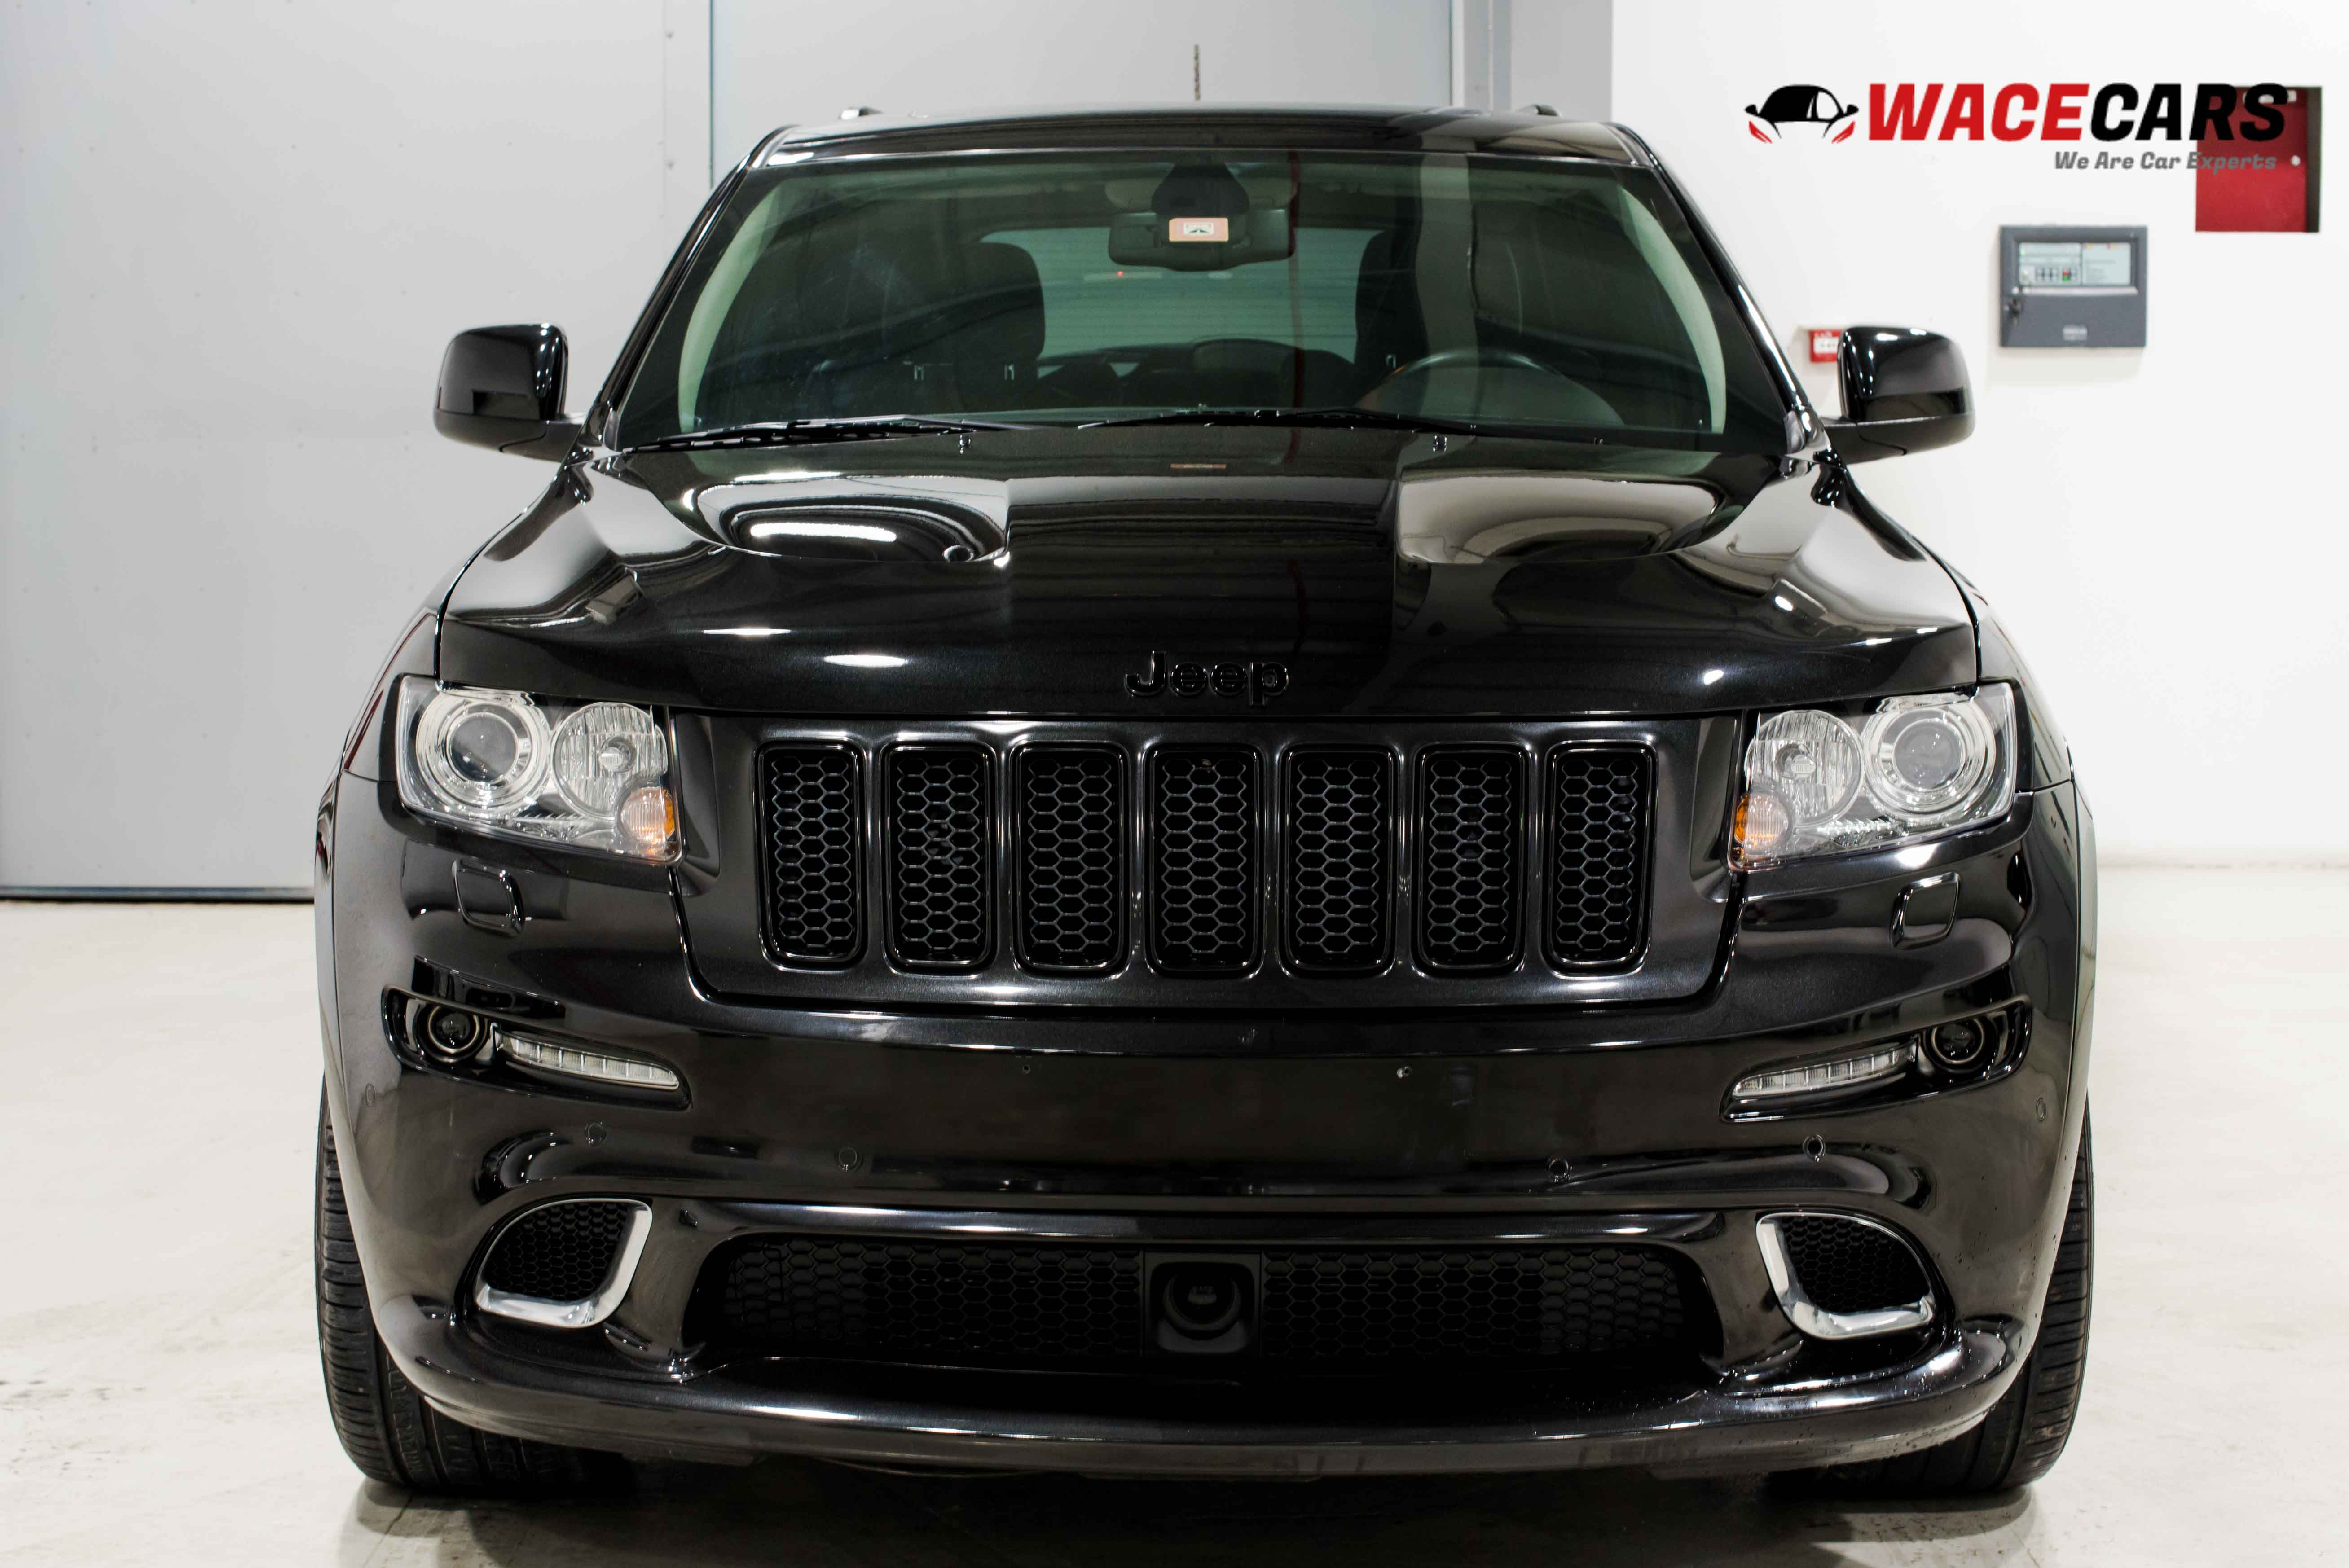 used jeep grand cherokee 6 4l srt8 2013 for sale in dubai. Black Bedroom Furniture Sets. Home Design Ideas